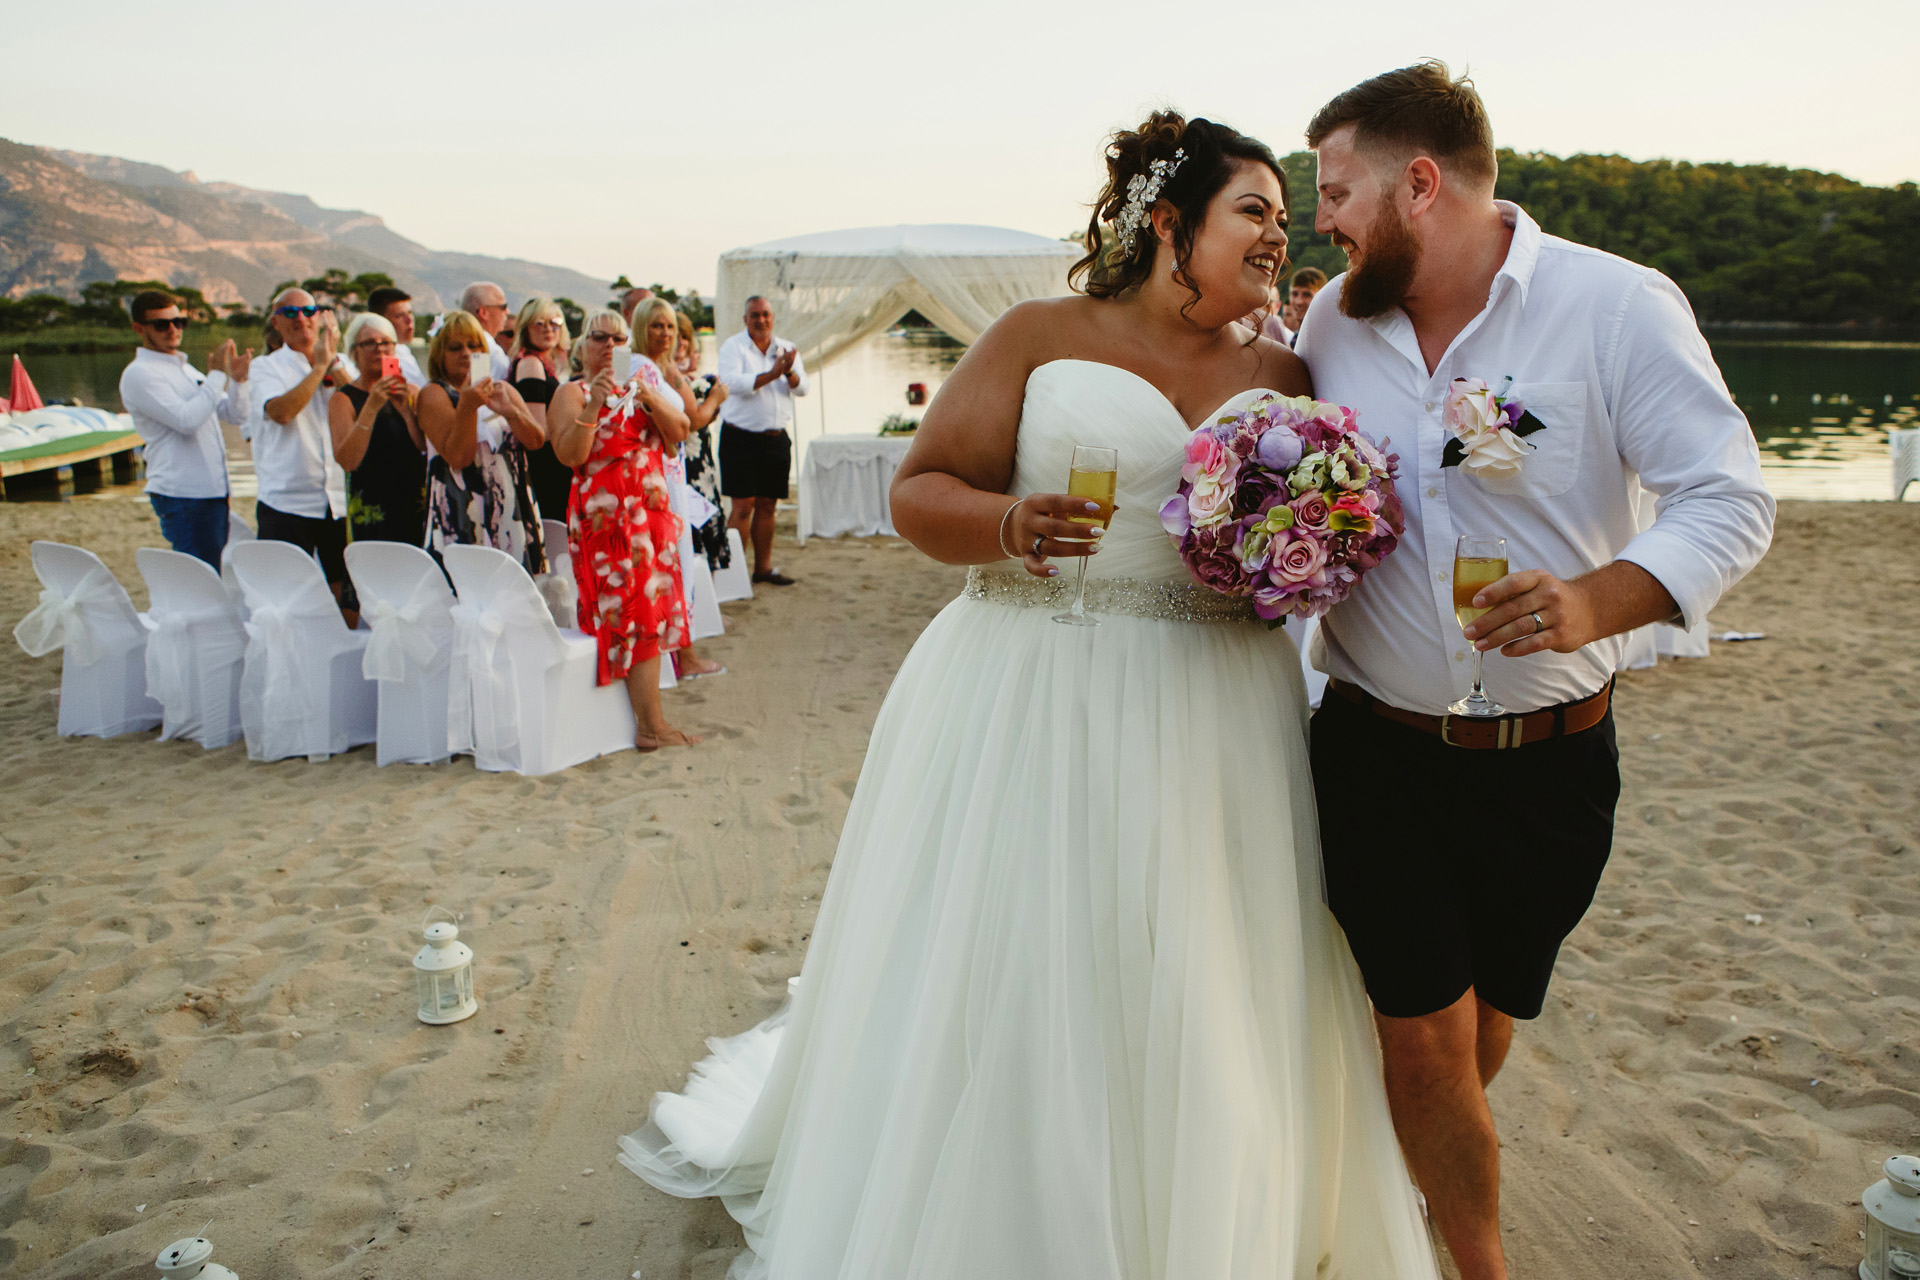 Fethiye, Turkey Elopement Ceremony at the Beach | At the end of the ceremony